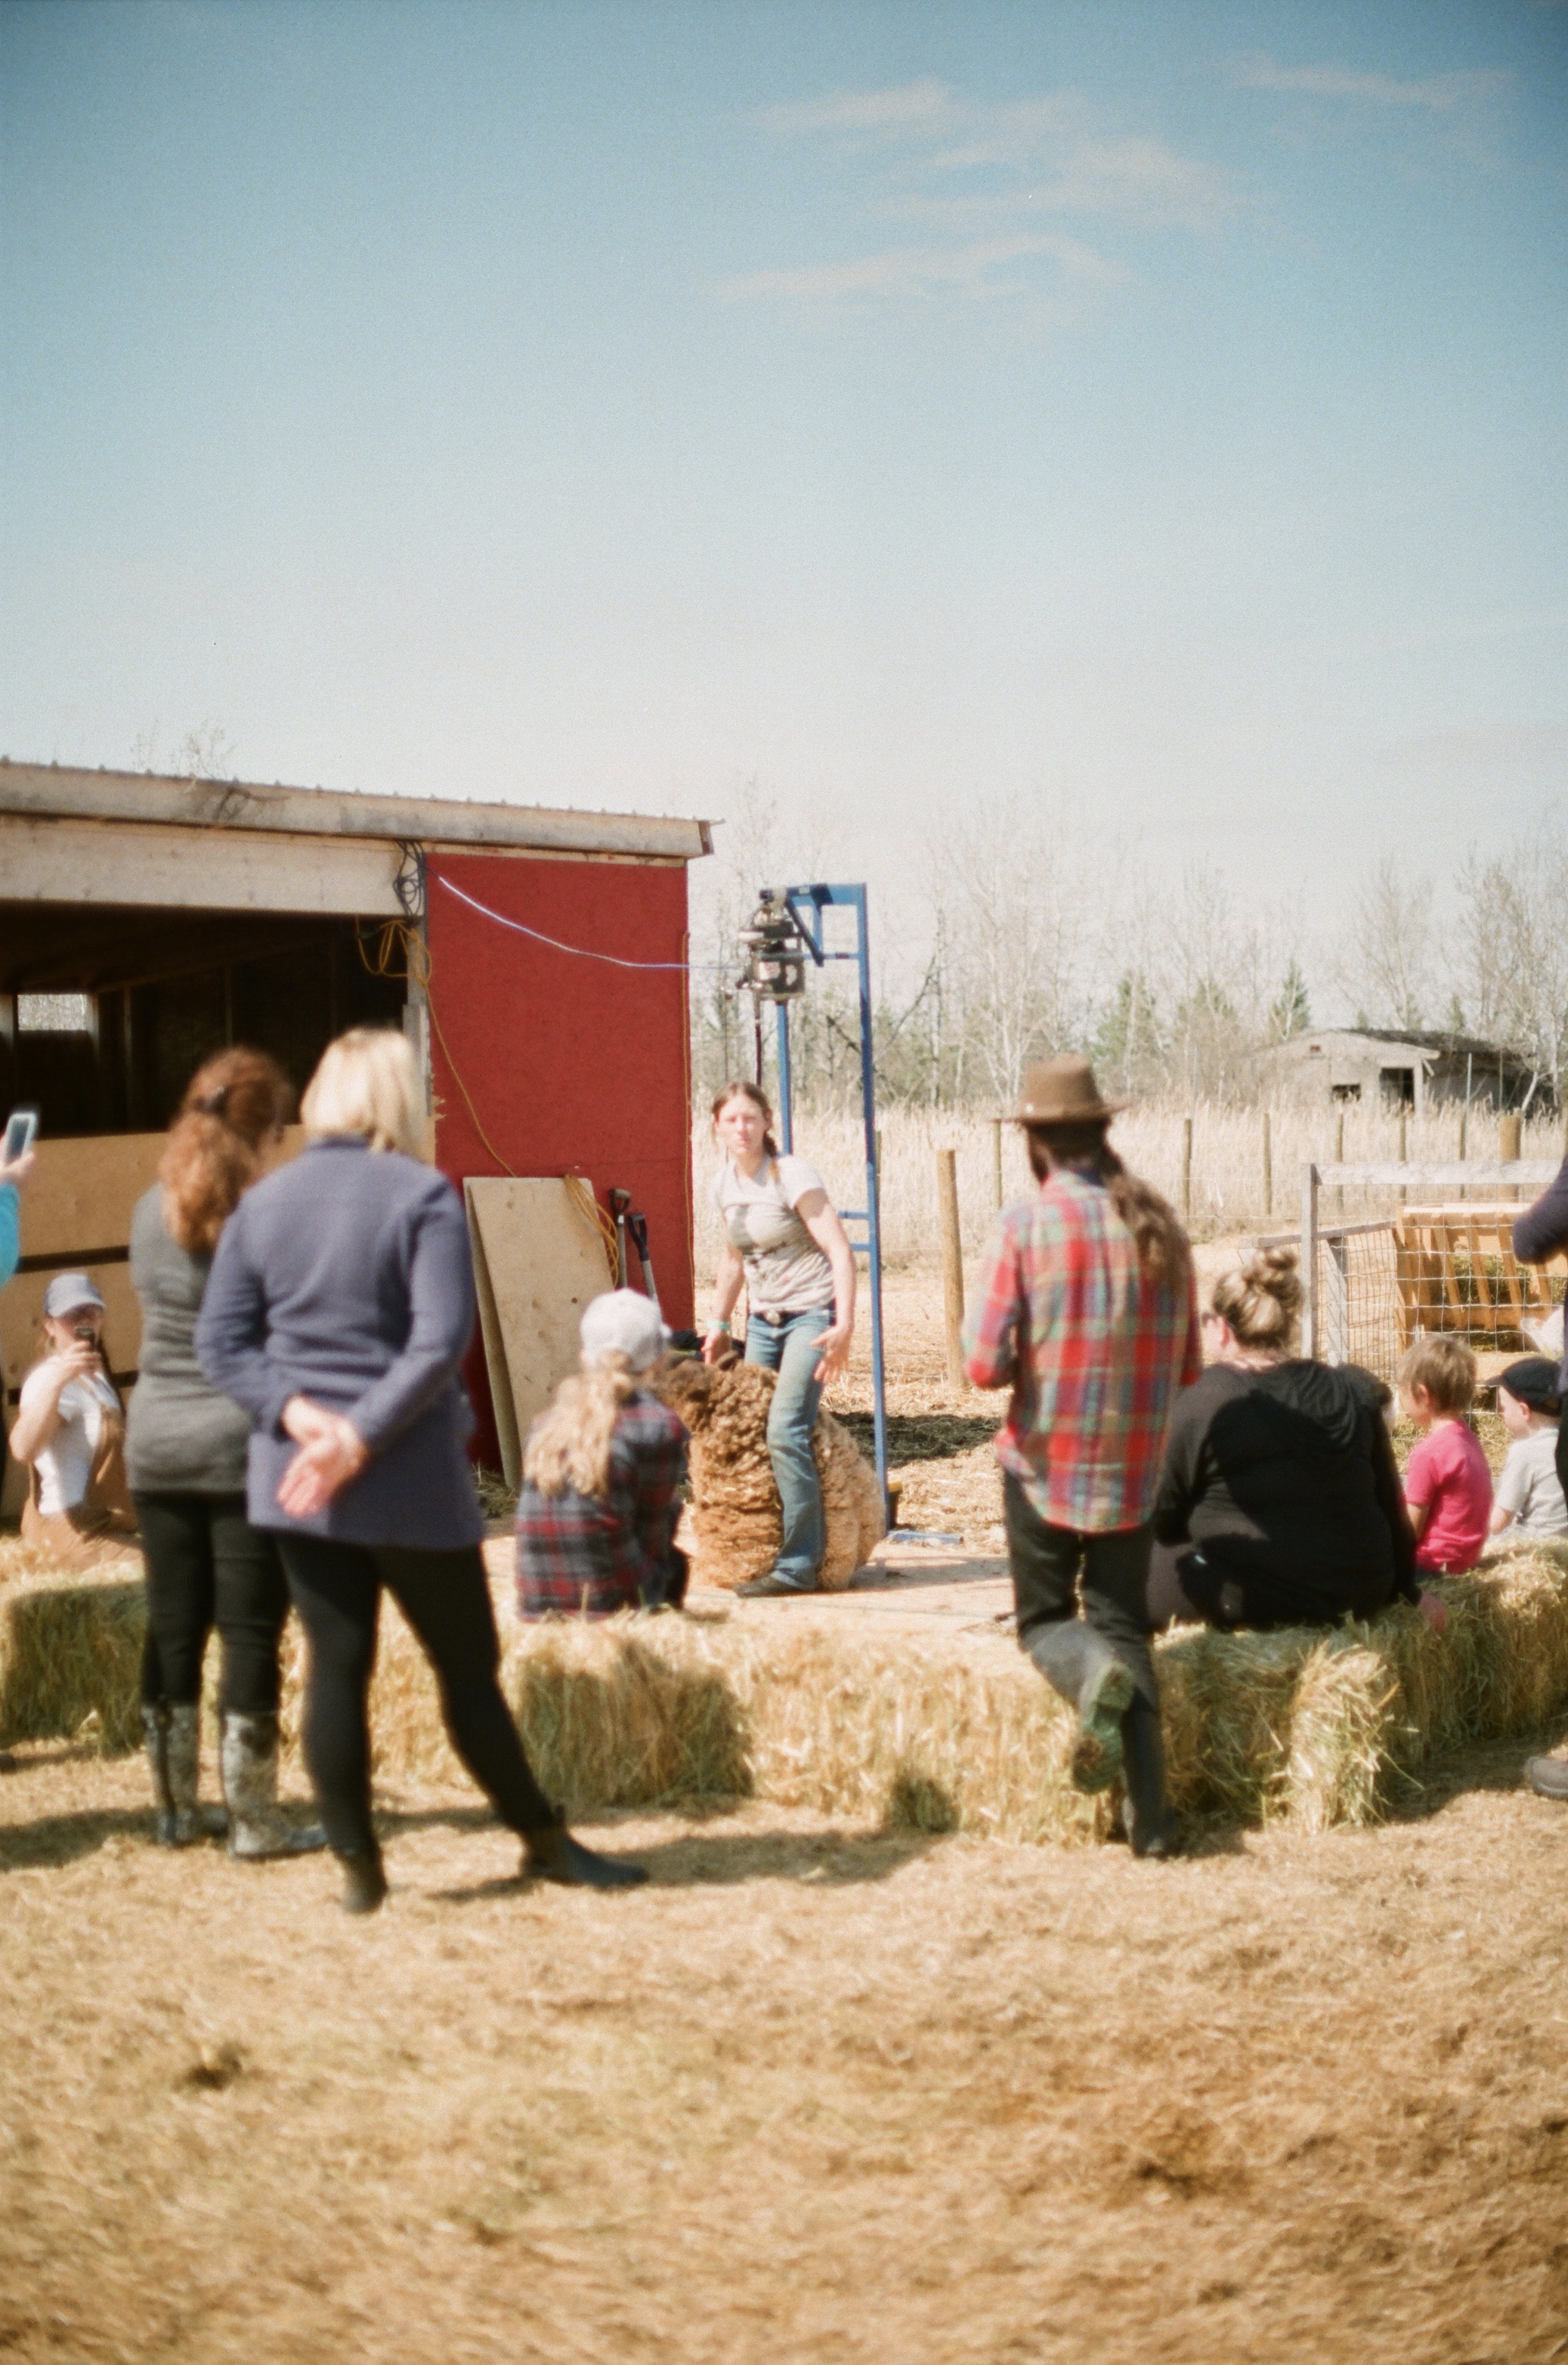 Stacey explaining the process of shearing                                          (Photo by Mackenzie Smith)